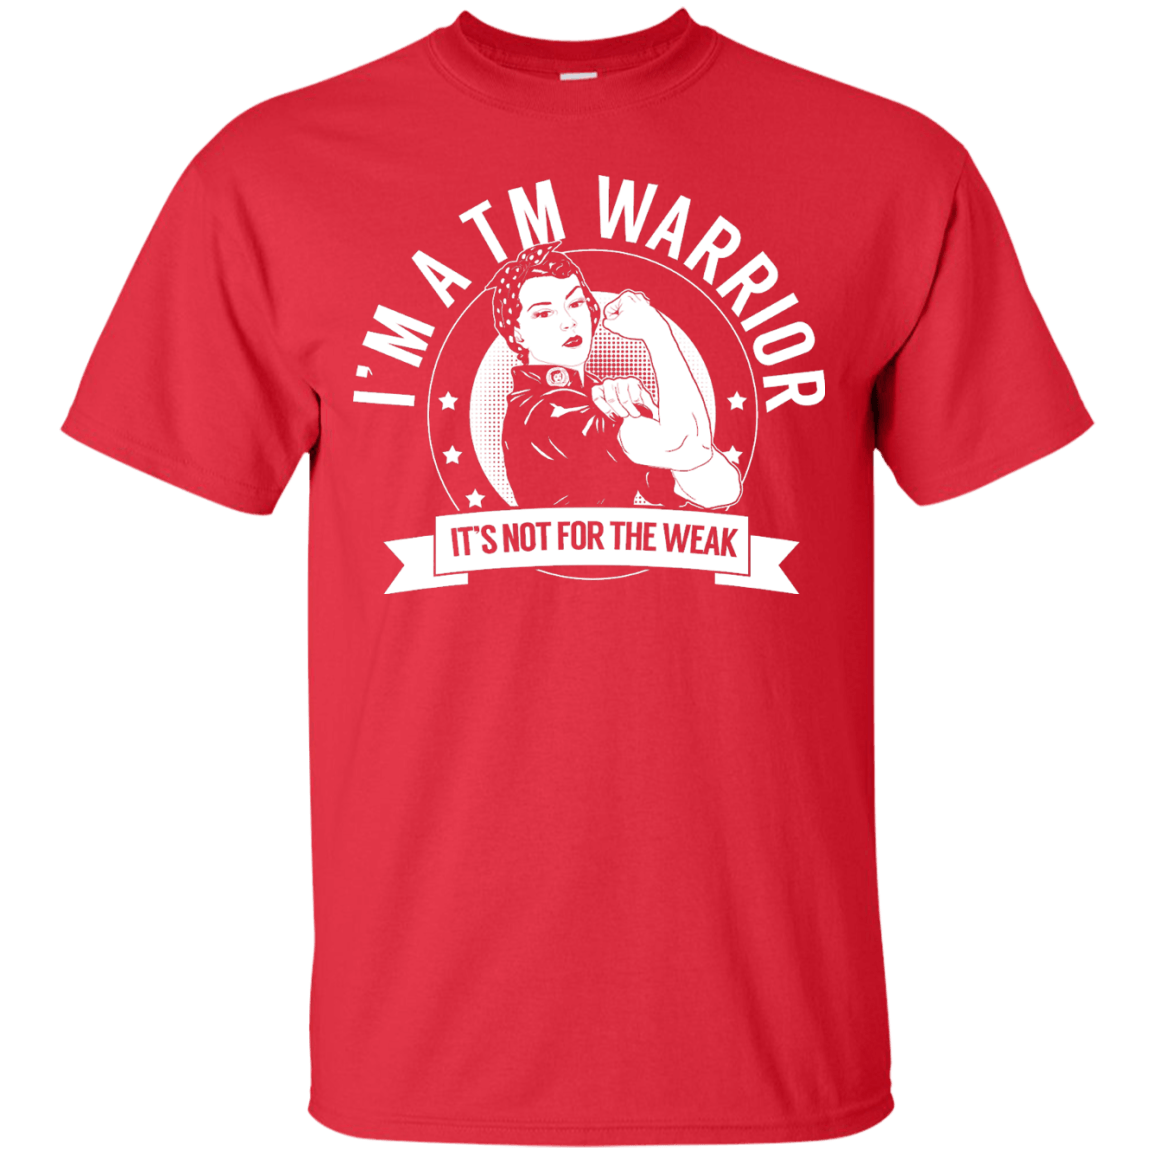 Short Sleeve - Transverse Myelitis - TM Warrior Not For The Weak Unisex Shirt